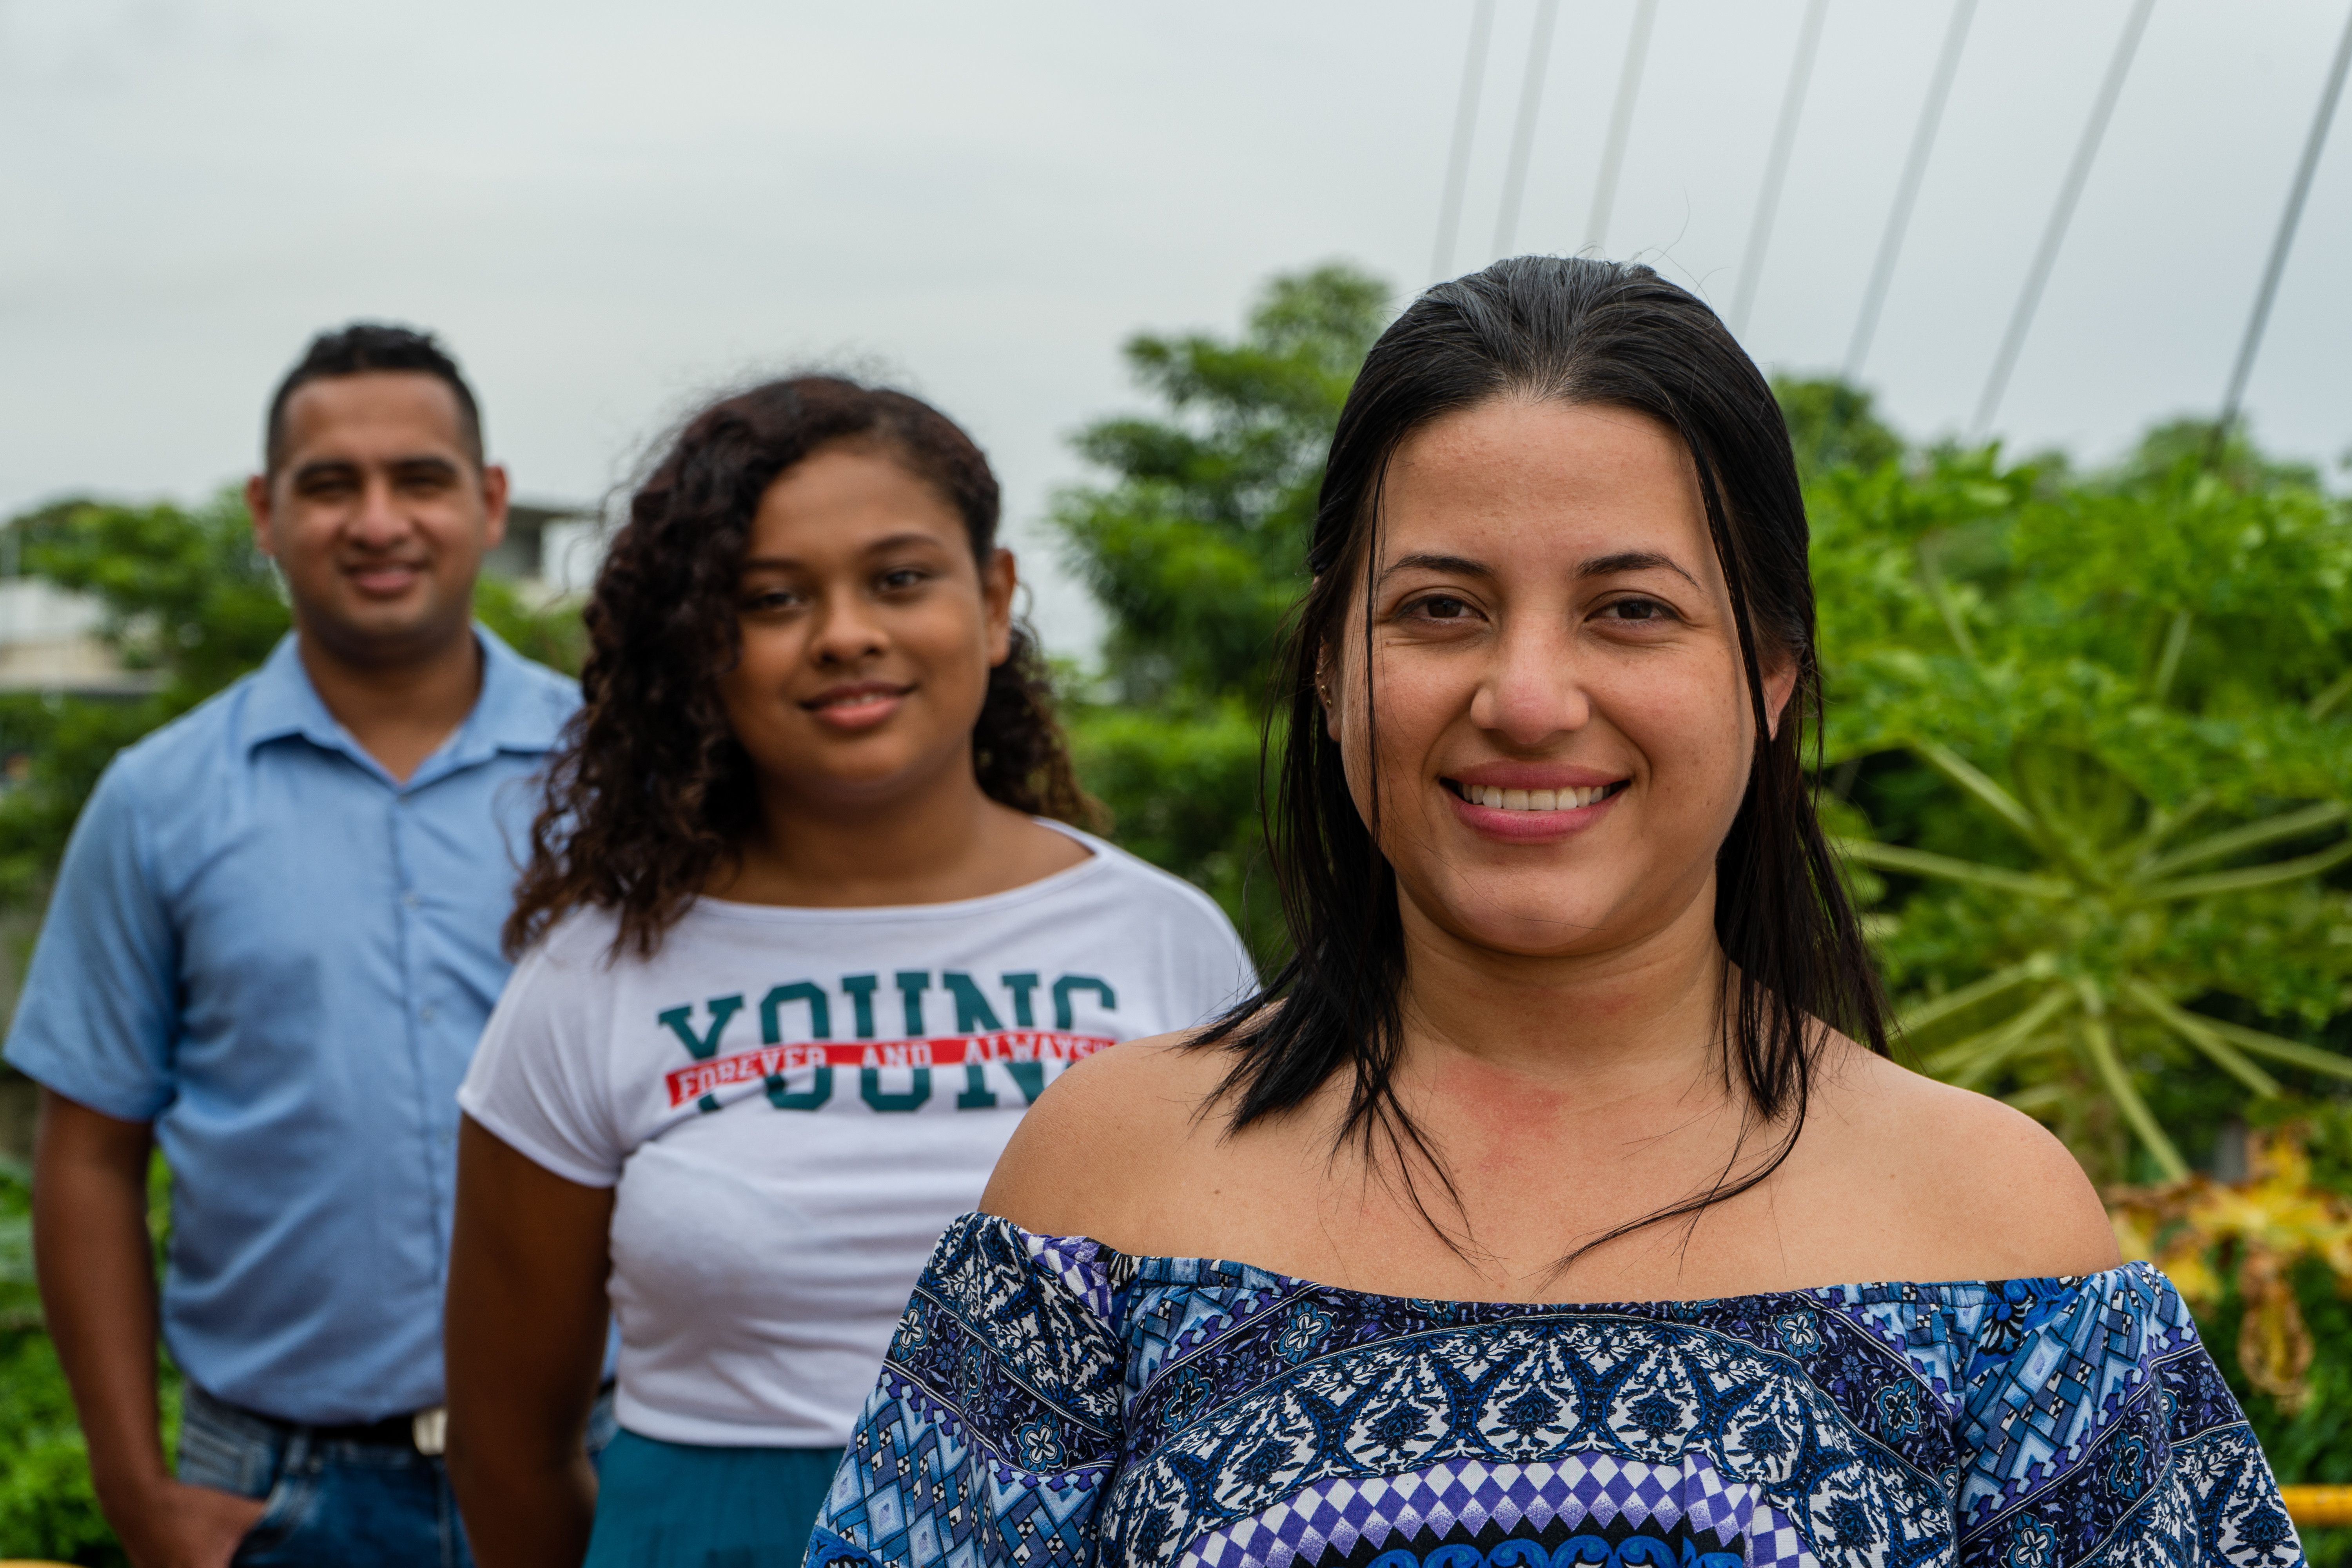 Mori Oyola (left), Magda Oyola (middle) and Wendy Pérez (right) are members of Sensación Estéreo, a community radio based in Malambo, a town located at the state of Atlántico in the north coast of Colombia. Sensación Estéreo has been working officially since 1998 and is one of the oldest and more well-known radio stations of this town.Sensación Estéreo is a community radio linked to the COVID-19 response C4D Strategy in Malambo, in the state of Atlántico located at the north coast of Colombia. This local radio is currently linked to the strategy 'Somos Enlace', carried out by UNICEF Colombia, along with its implementing partner 'La Otra Juventud'.Sensación Estéreo is a community radio located in Malambo, Colombia, in the state of Atlántico at the north coast of the country. This organization was created over 20 years ago, but it got the official license as a community radio in 1998. Malambo has been deeply affected by the Coronavirus, therefore the work made through the network 'Somos Enlace' (meaning in Spanish we are a bond) is even more important in this context. As a part of the COVID-19 response, this Communication for Development strategy seeks that people and communities access life-saving information, increase their perceptions of risk and promote care and protection habits. To UNICEF, it is important that in Colombia, people are aware of the importance of handwashing and that when they leave their homes, they understand why they should wear the mask, among other measures to prevent COVID-19 spreading. 'Somos Enlace' has linked 28 alternative media and community- based organizations throughout 16 states in Colombia, and has been able to reach afro communities, indigenous communities and rural areas of the country. The strategy is being carried out by UNICEF Colombia along with its implementing partner 'La Otra Juventud' since the beginning of the year throughout the whole country. This strategy has been possible thanks